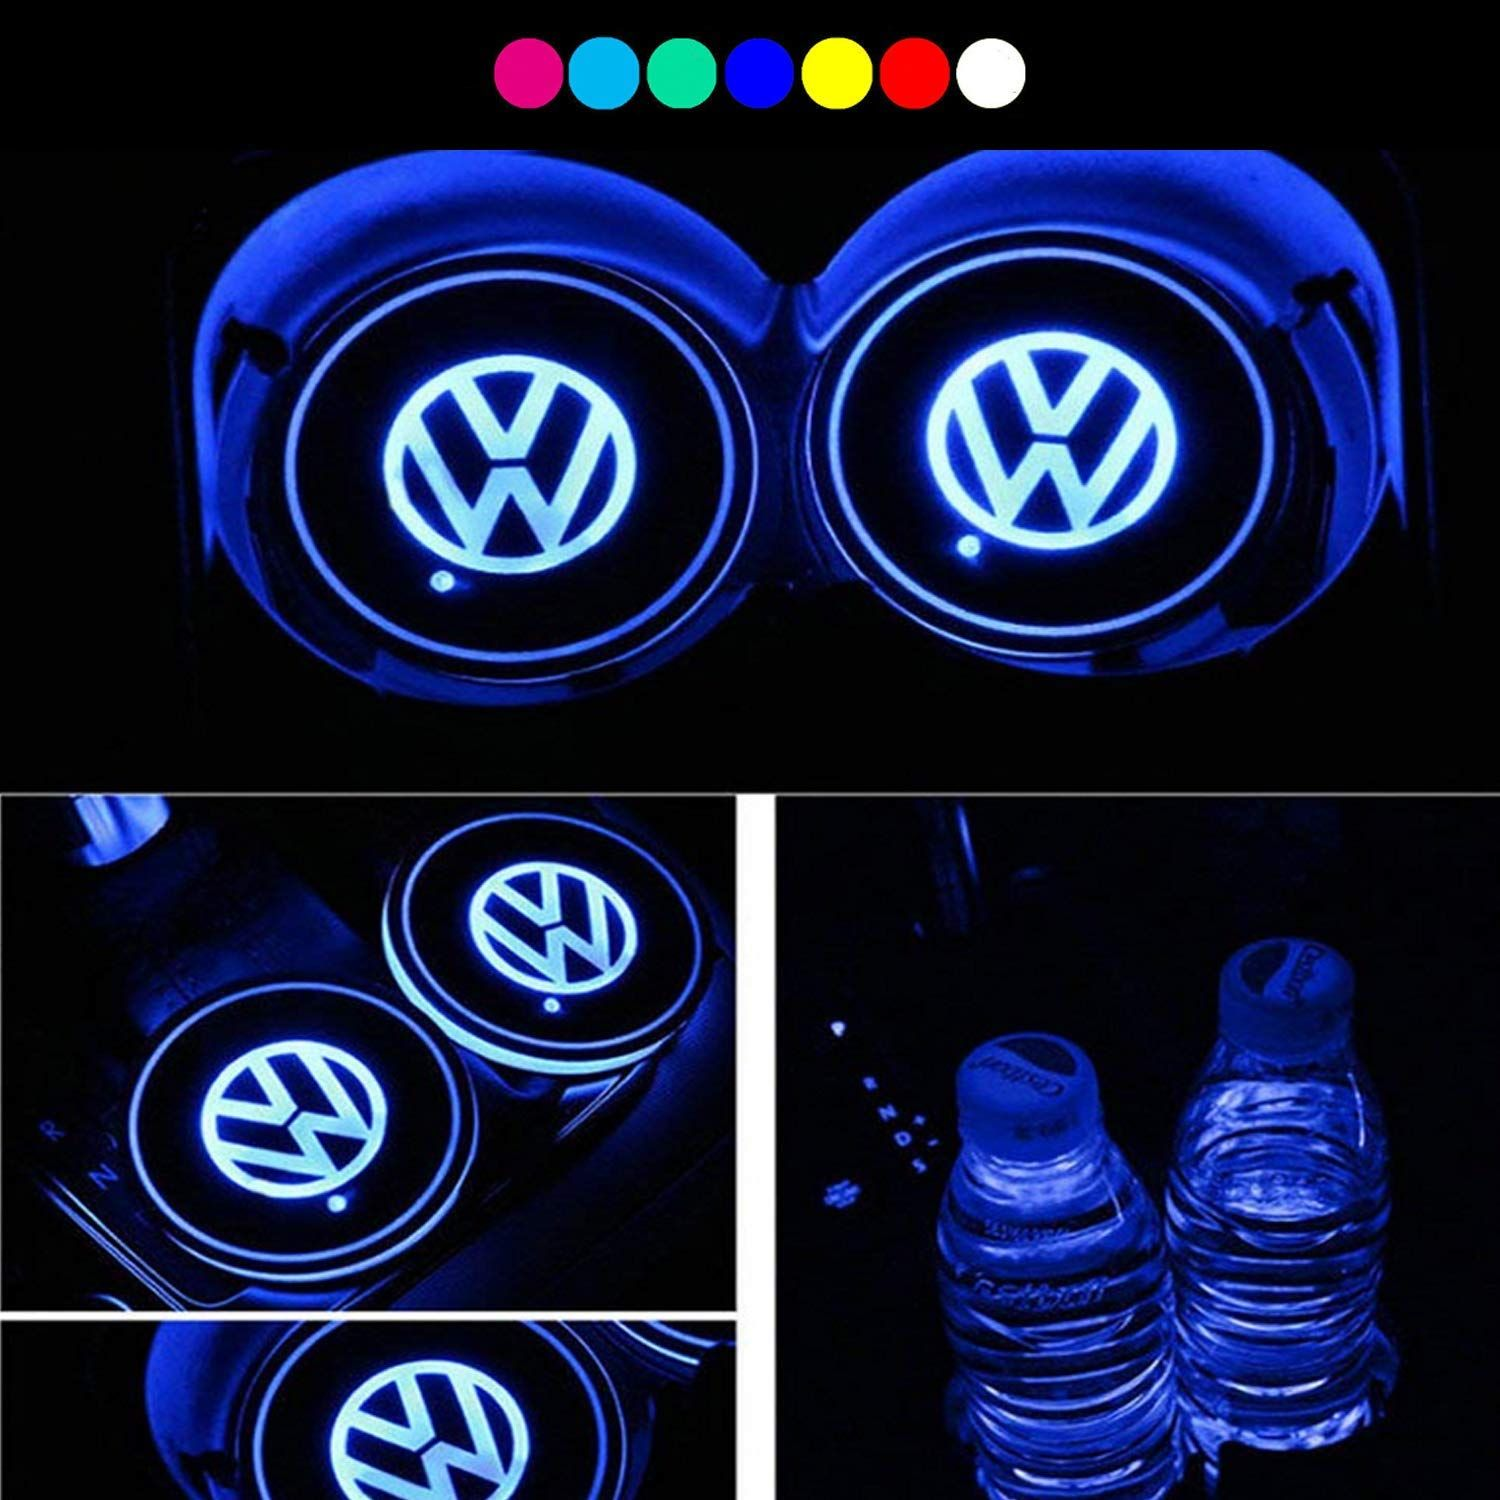 2pcs LED Car Logo Cup Holder Pads 7 Colors Changing USB Charging Mats Bottle Coasters Car Atmosphere Lamps